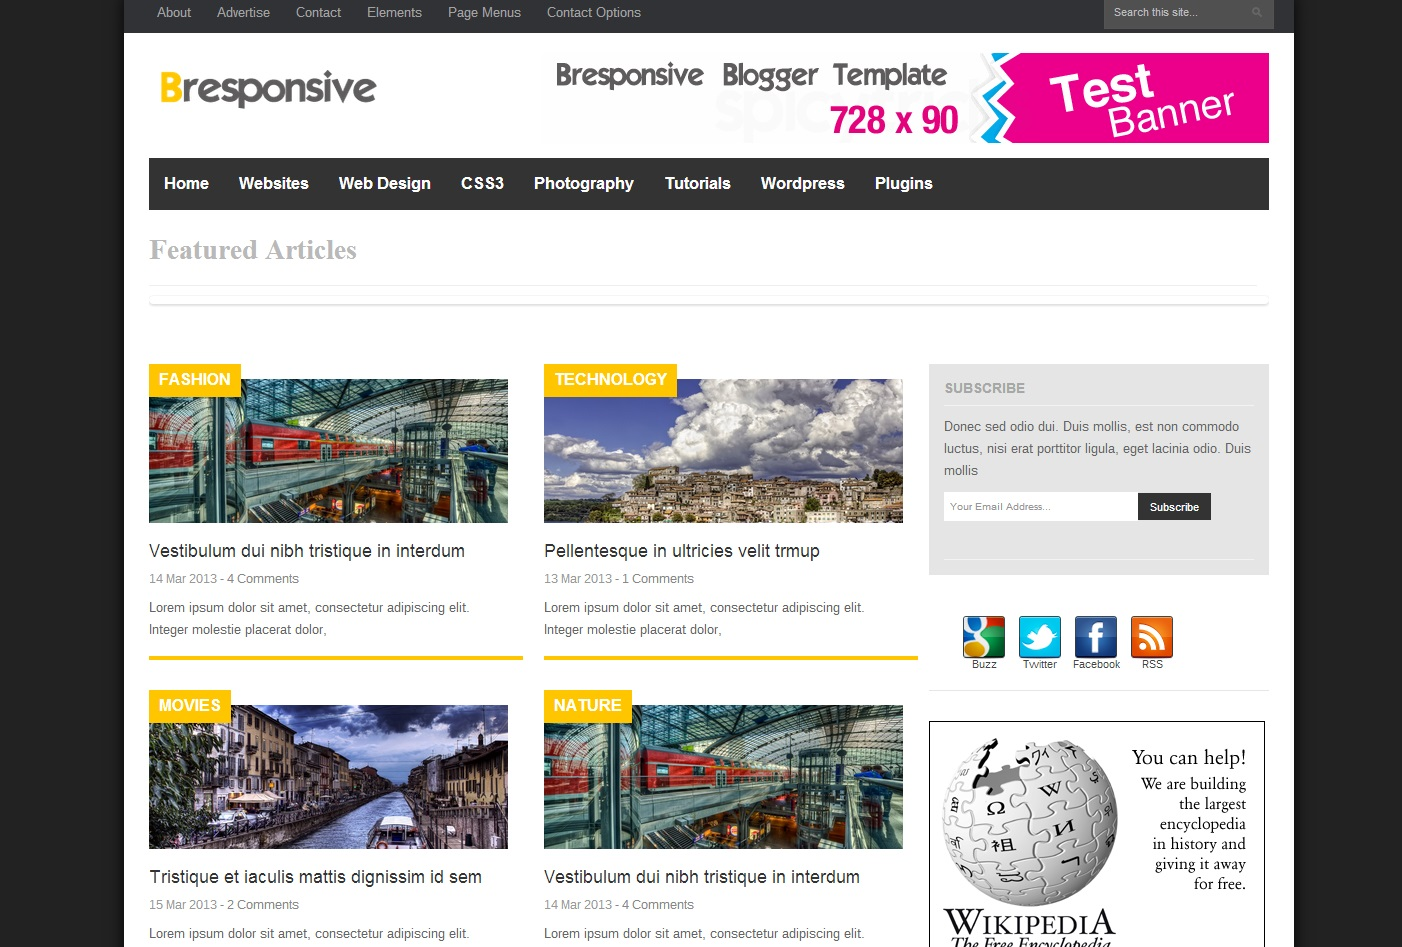 Bresponsive free blogger template download